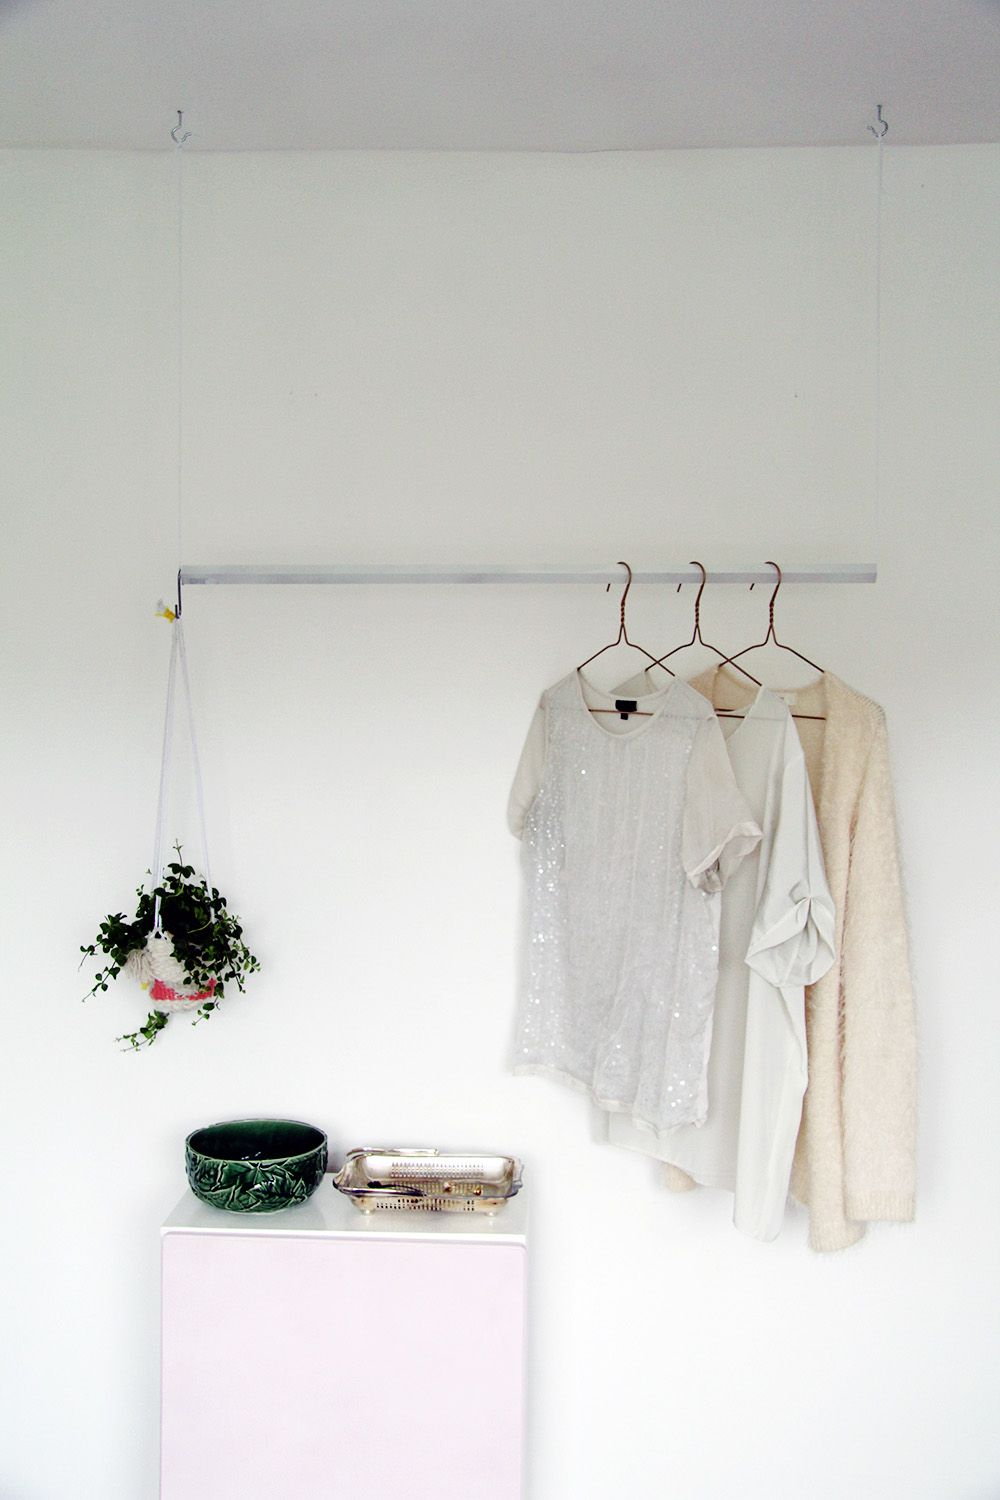 wardrobe ideas hanger b closet have blog clothes no storage when innovative organization you